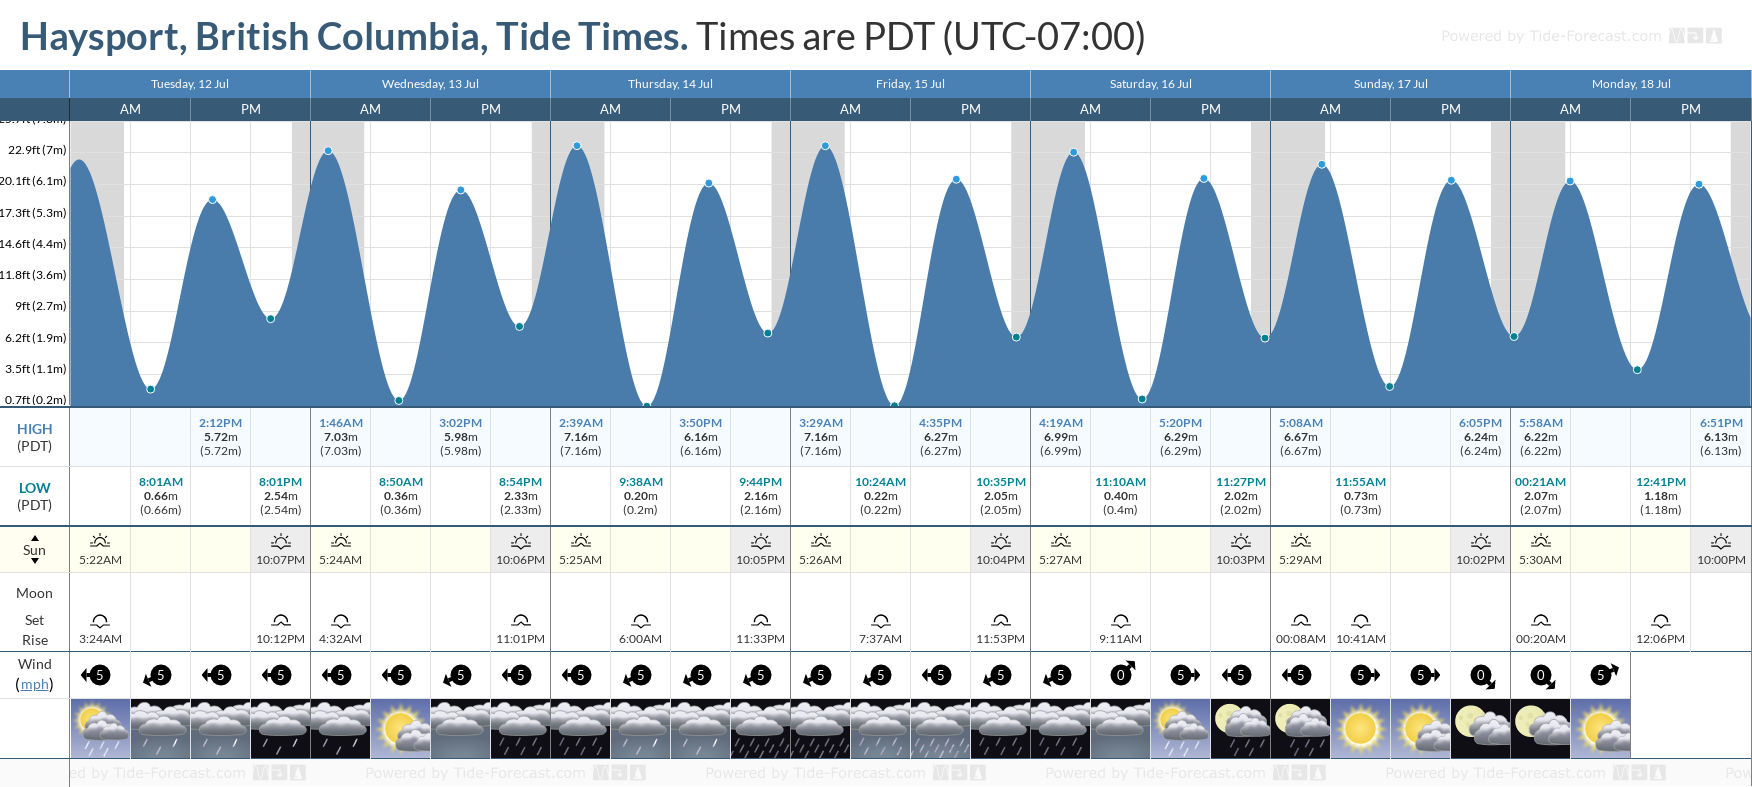 Haysport, British Columbia Tide Chart including high and low tide tide times for the next 7 days